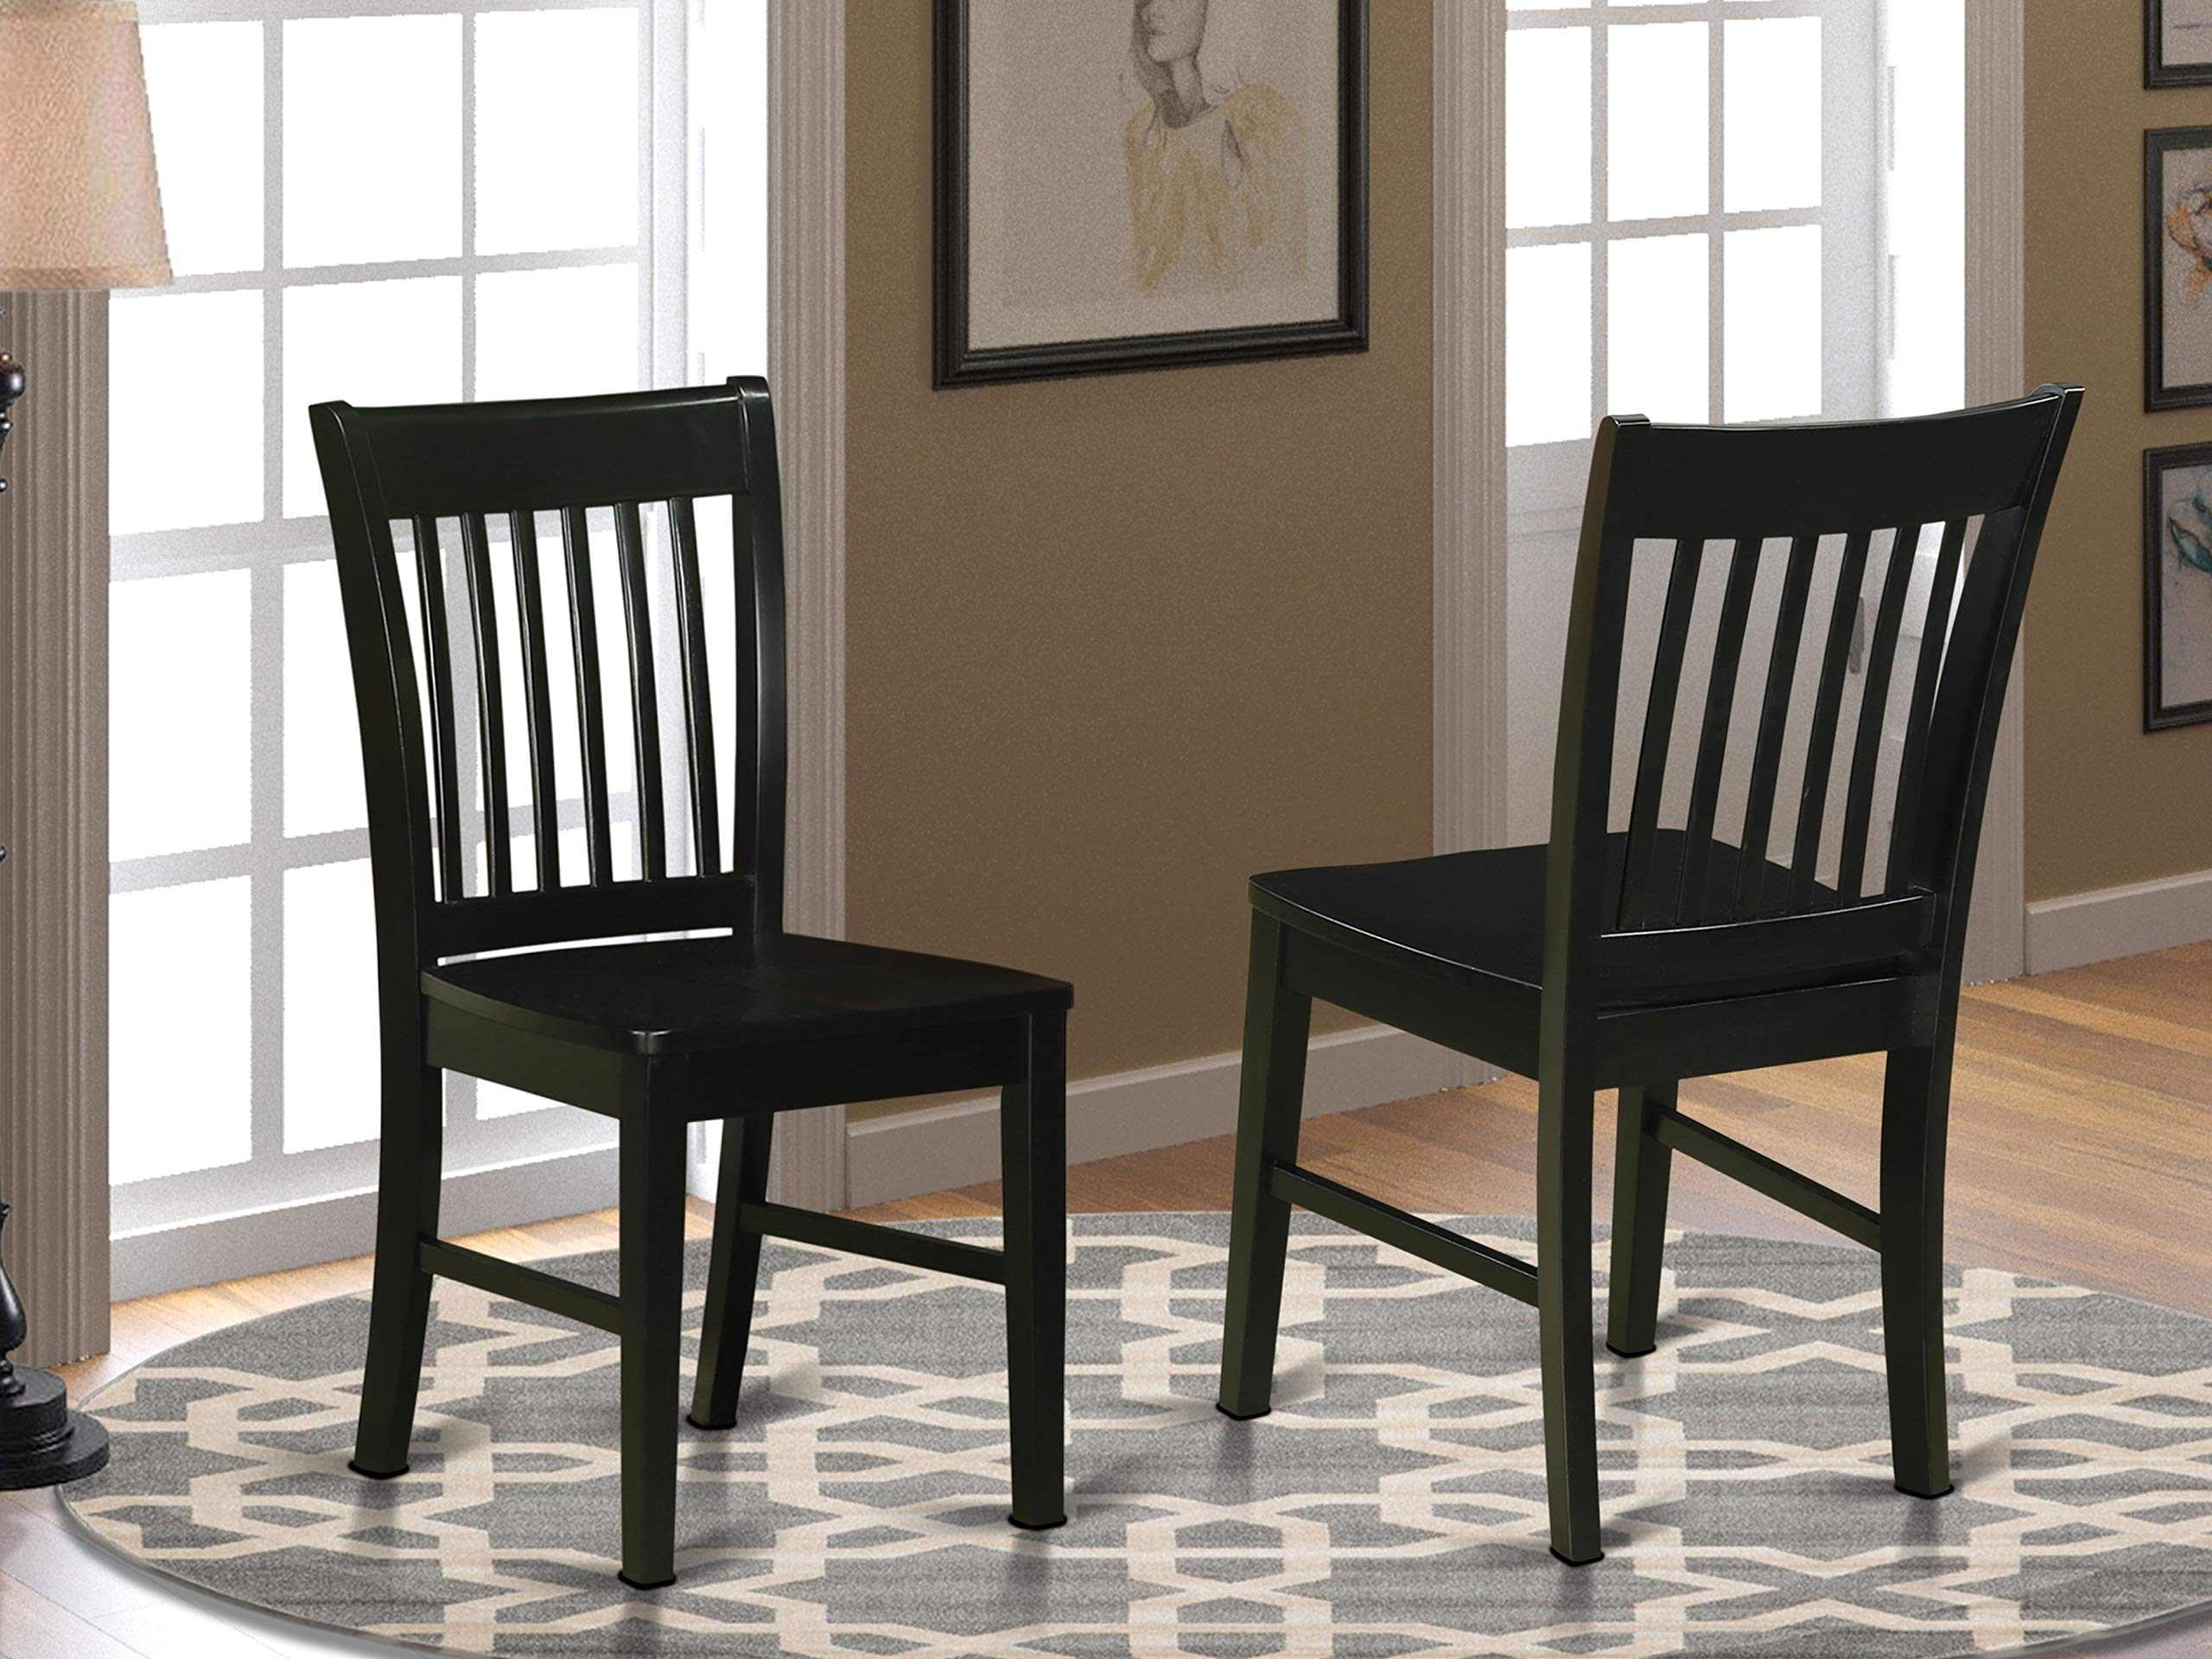 East West Furniture Norfolk kitchen chairs - Wooden Seat and Black Solid  wood Structure wooden dining chair set of 10